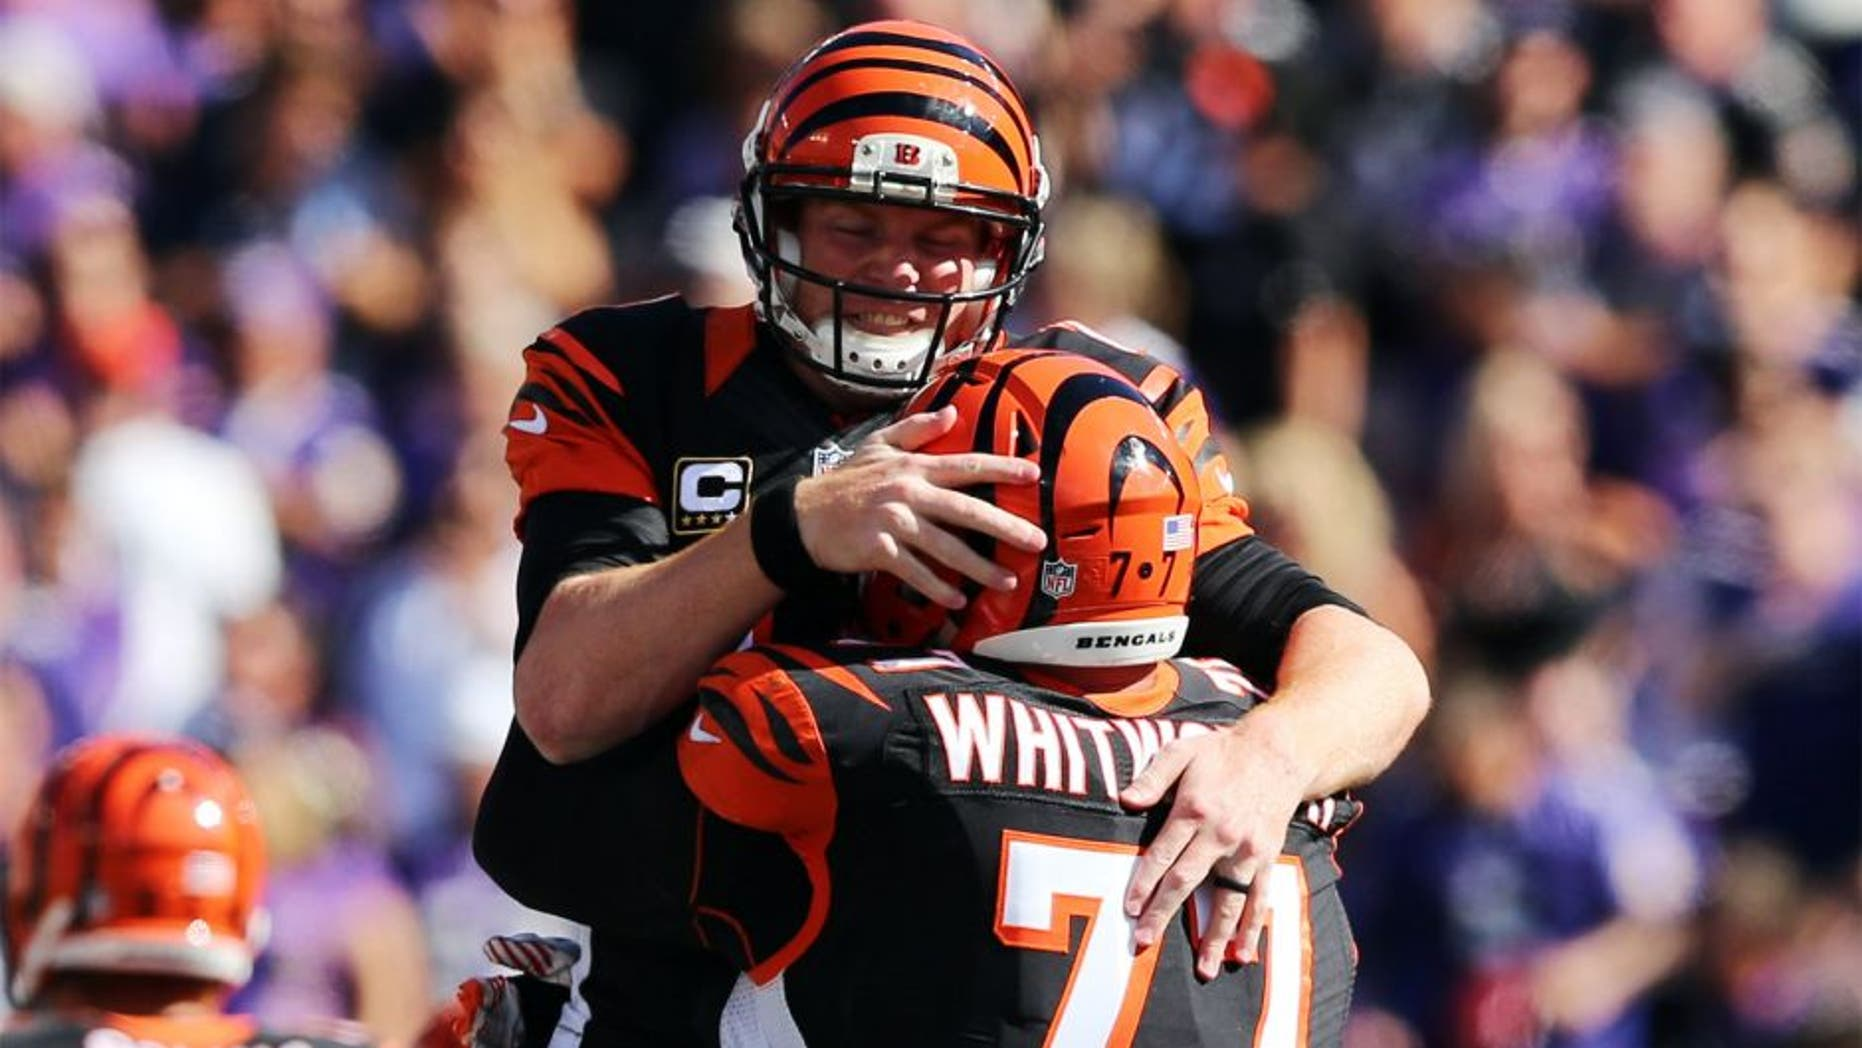 Sep 7, 2014; Baltimore, MD, USA; Cincinnati Bengals quarterback Andy Dalton (14) celebrates his last touchdown pass with tackle Andrew Whitworth (77) against the Baltimore Ravens at M&T Bank Stadium. Mandatory Credit: Mitch Stringer-USA TODAY Sports